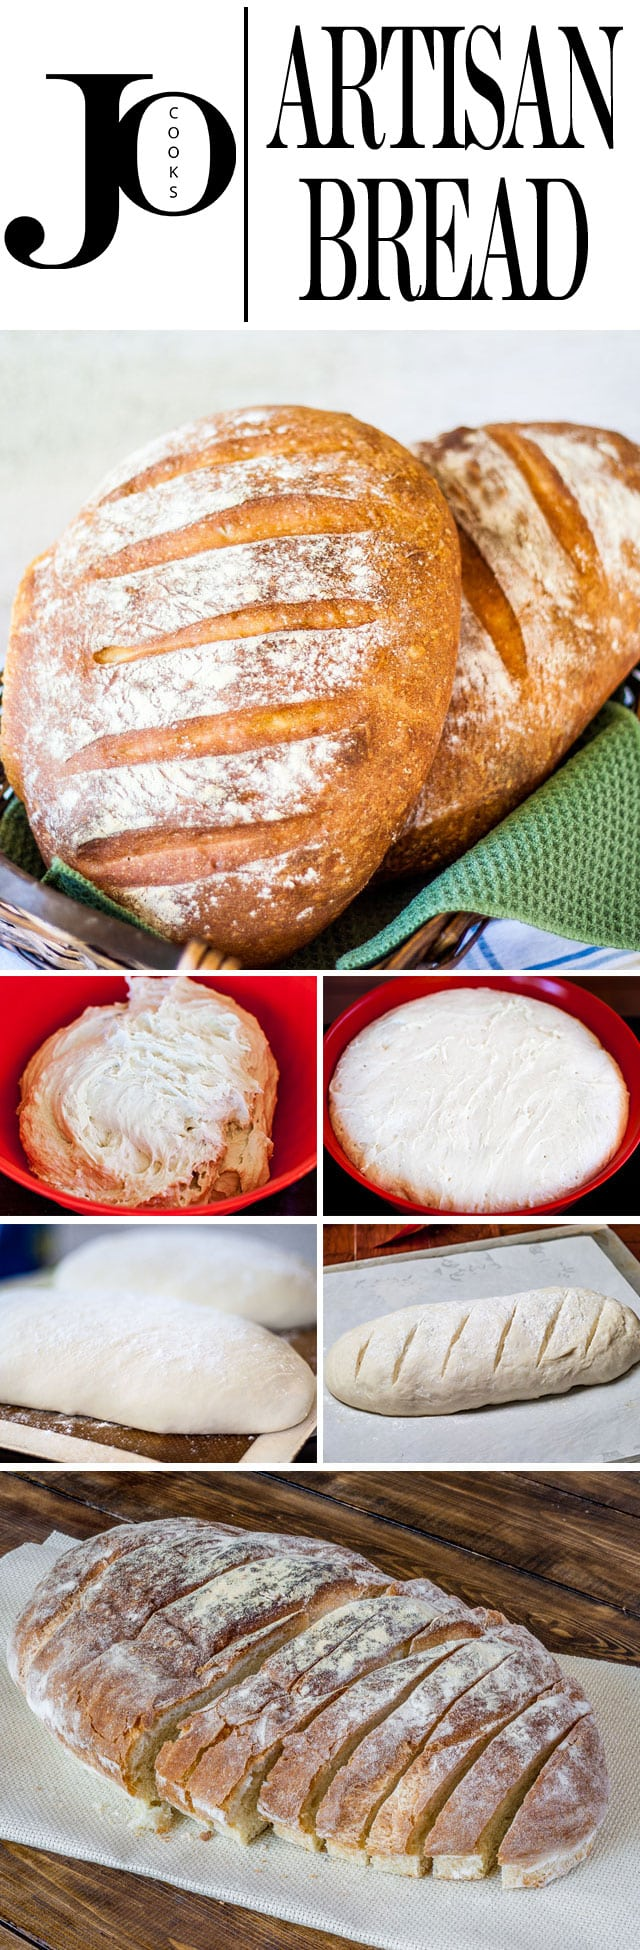 4 Ingredient No Fail No Knead Artisan Bread that's easy and delicious! Perfect for those who love freshly home baked bread right out of the oven. #4ingredients #artisanbread #noknead